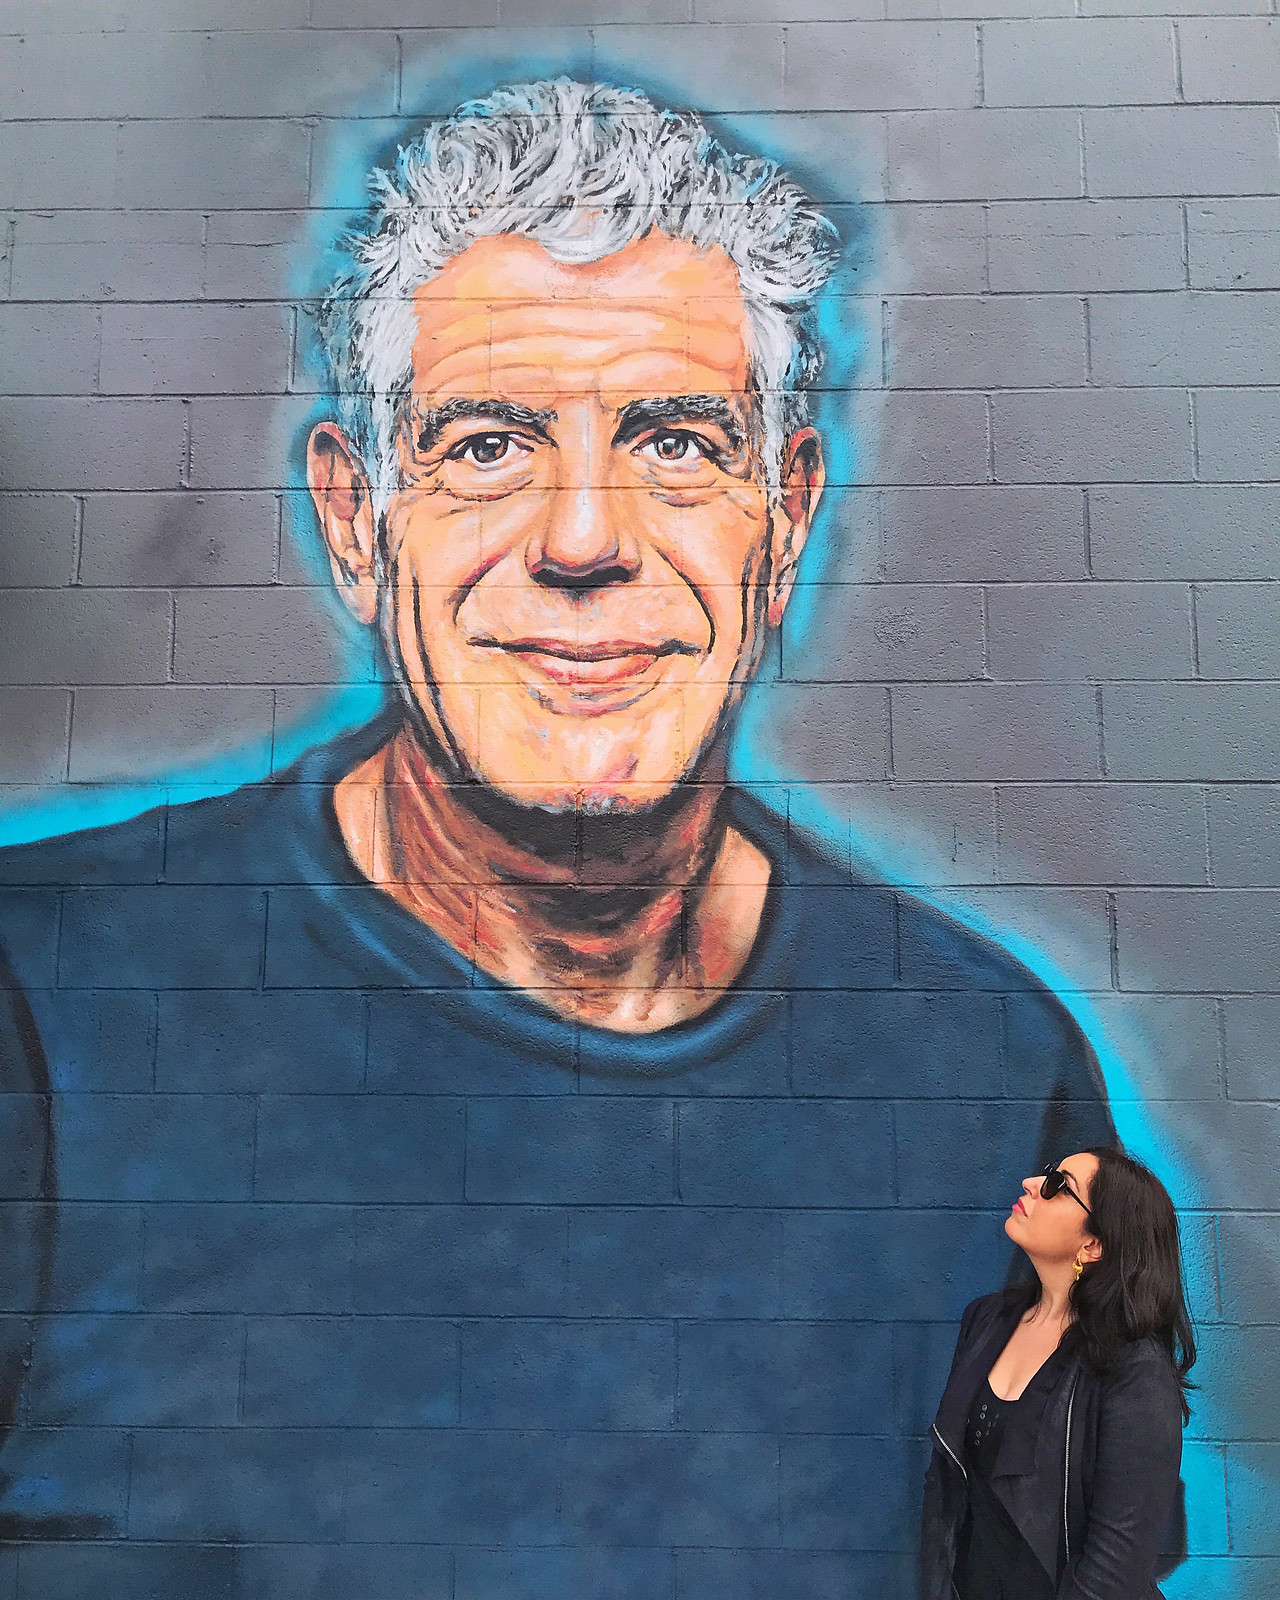 Anthony Bourdain Mural at Gramercy Santa Monica